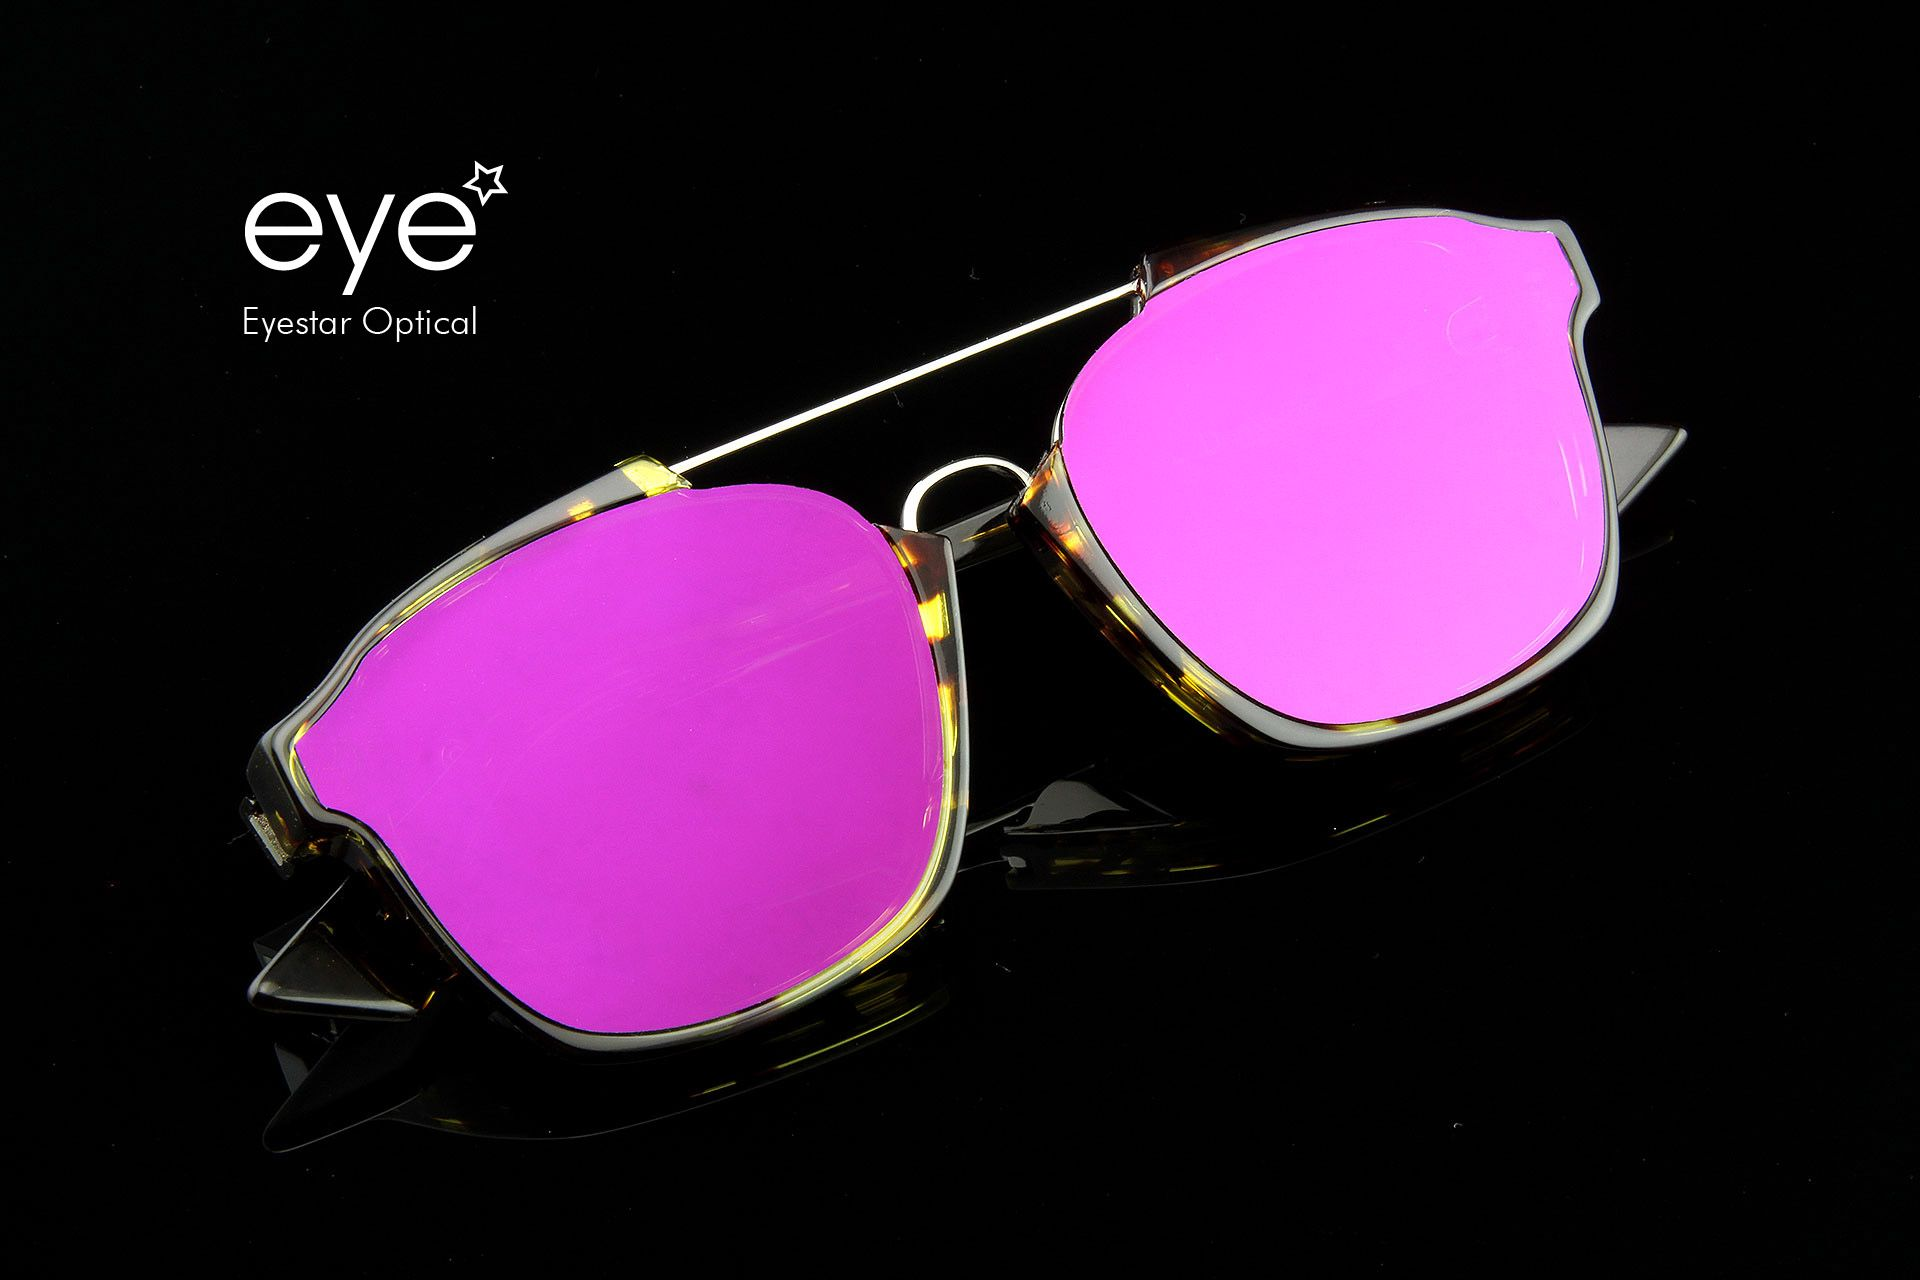 9c45ada9d1b8 DIOR ABSTRACT - Purple Mirror Havana. Now available at all Eyestar  locations.